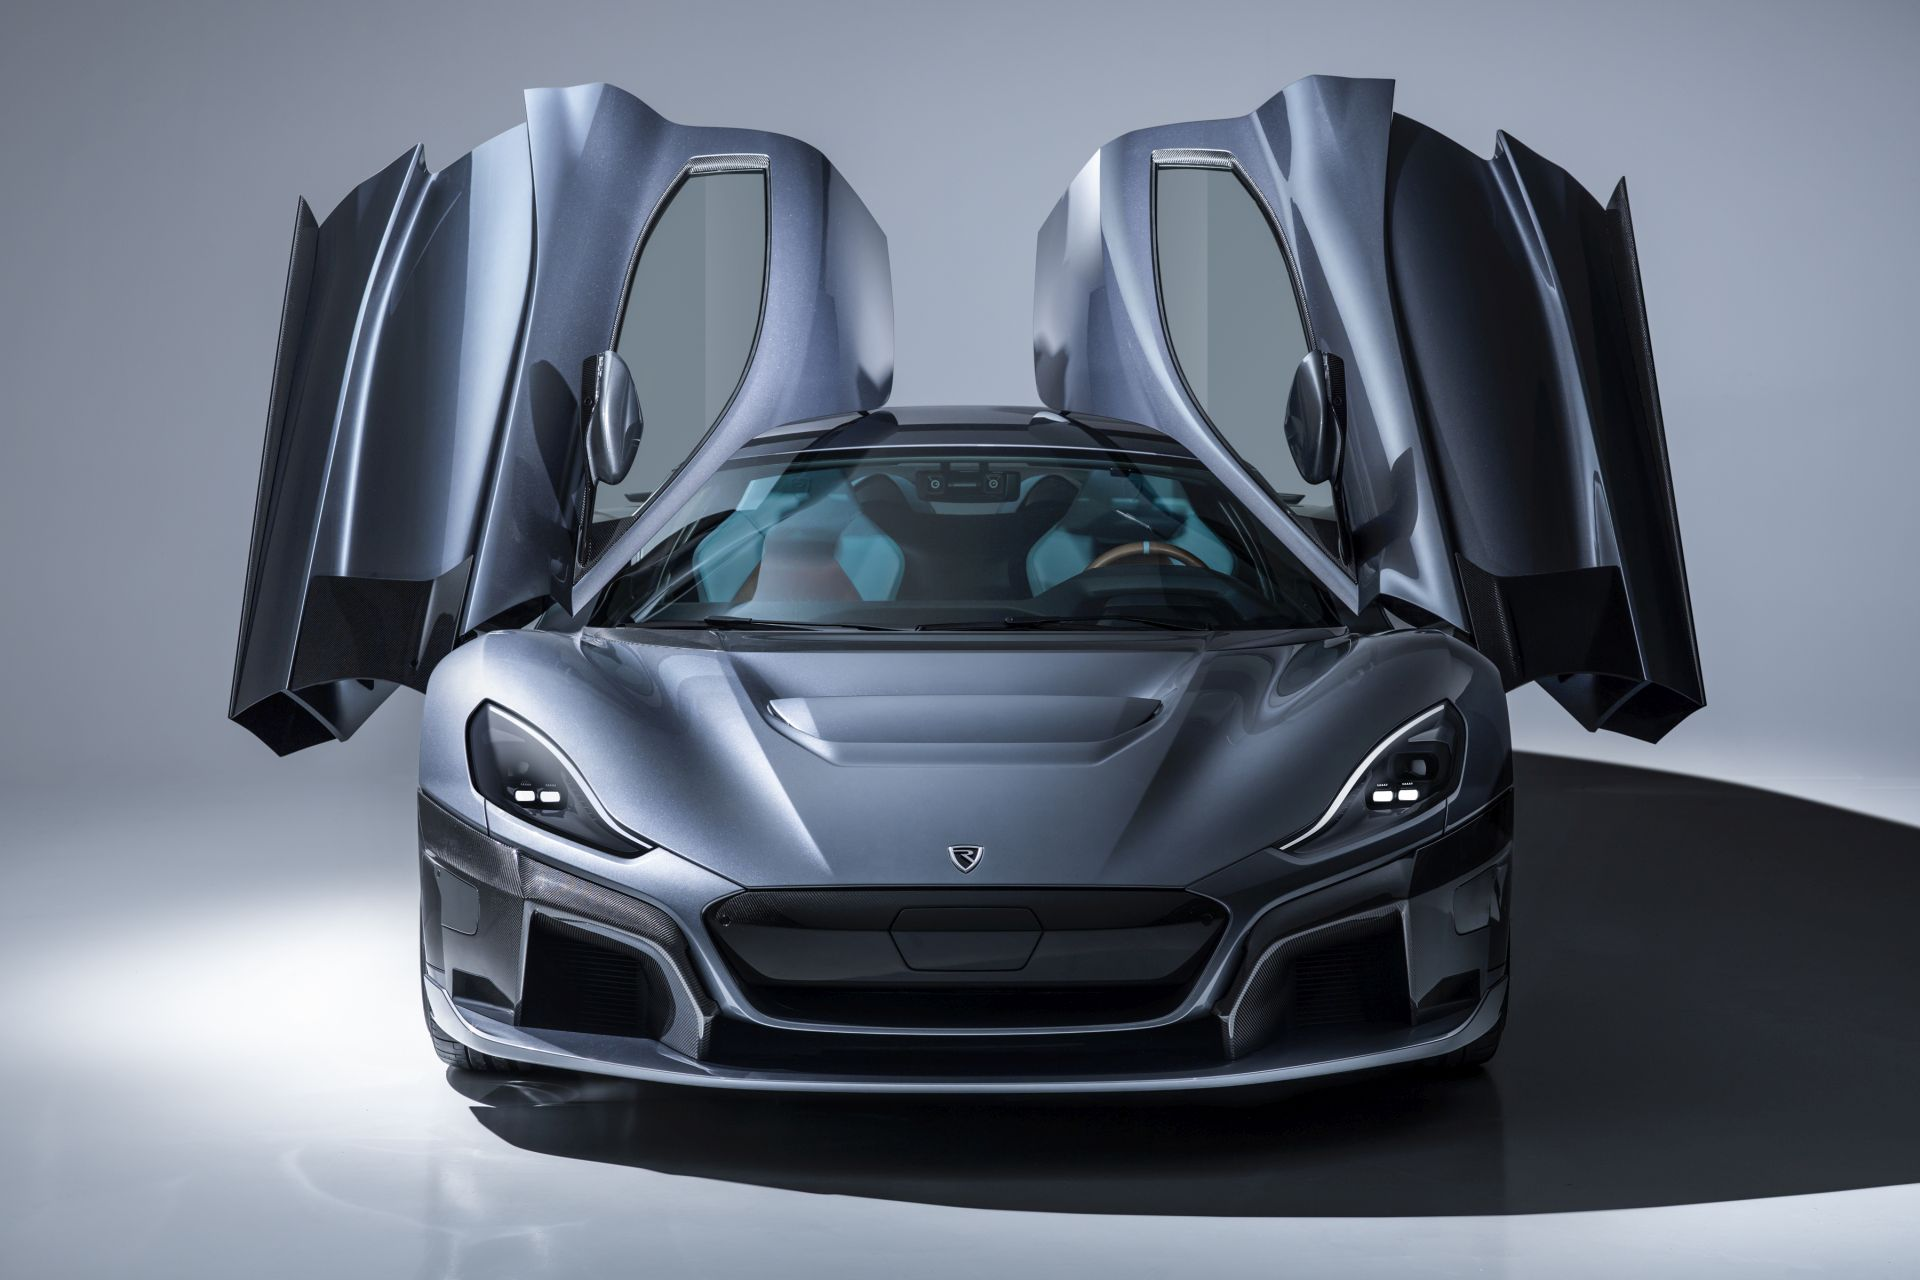 2019 Rimac C_Two News - Top Speed